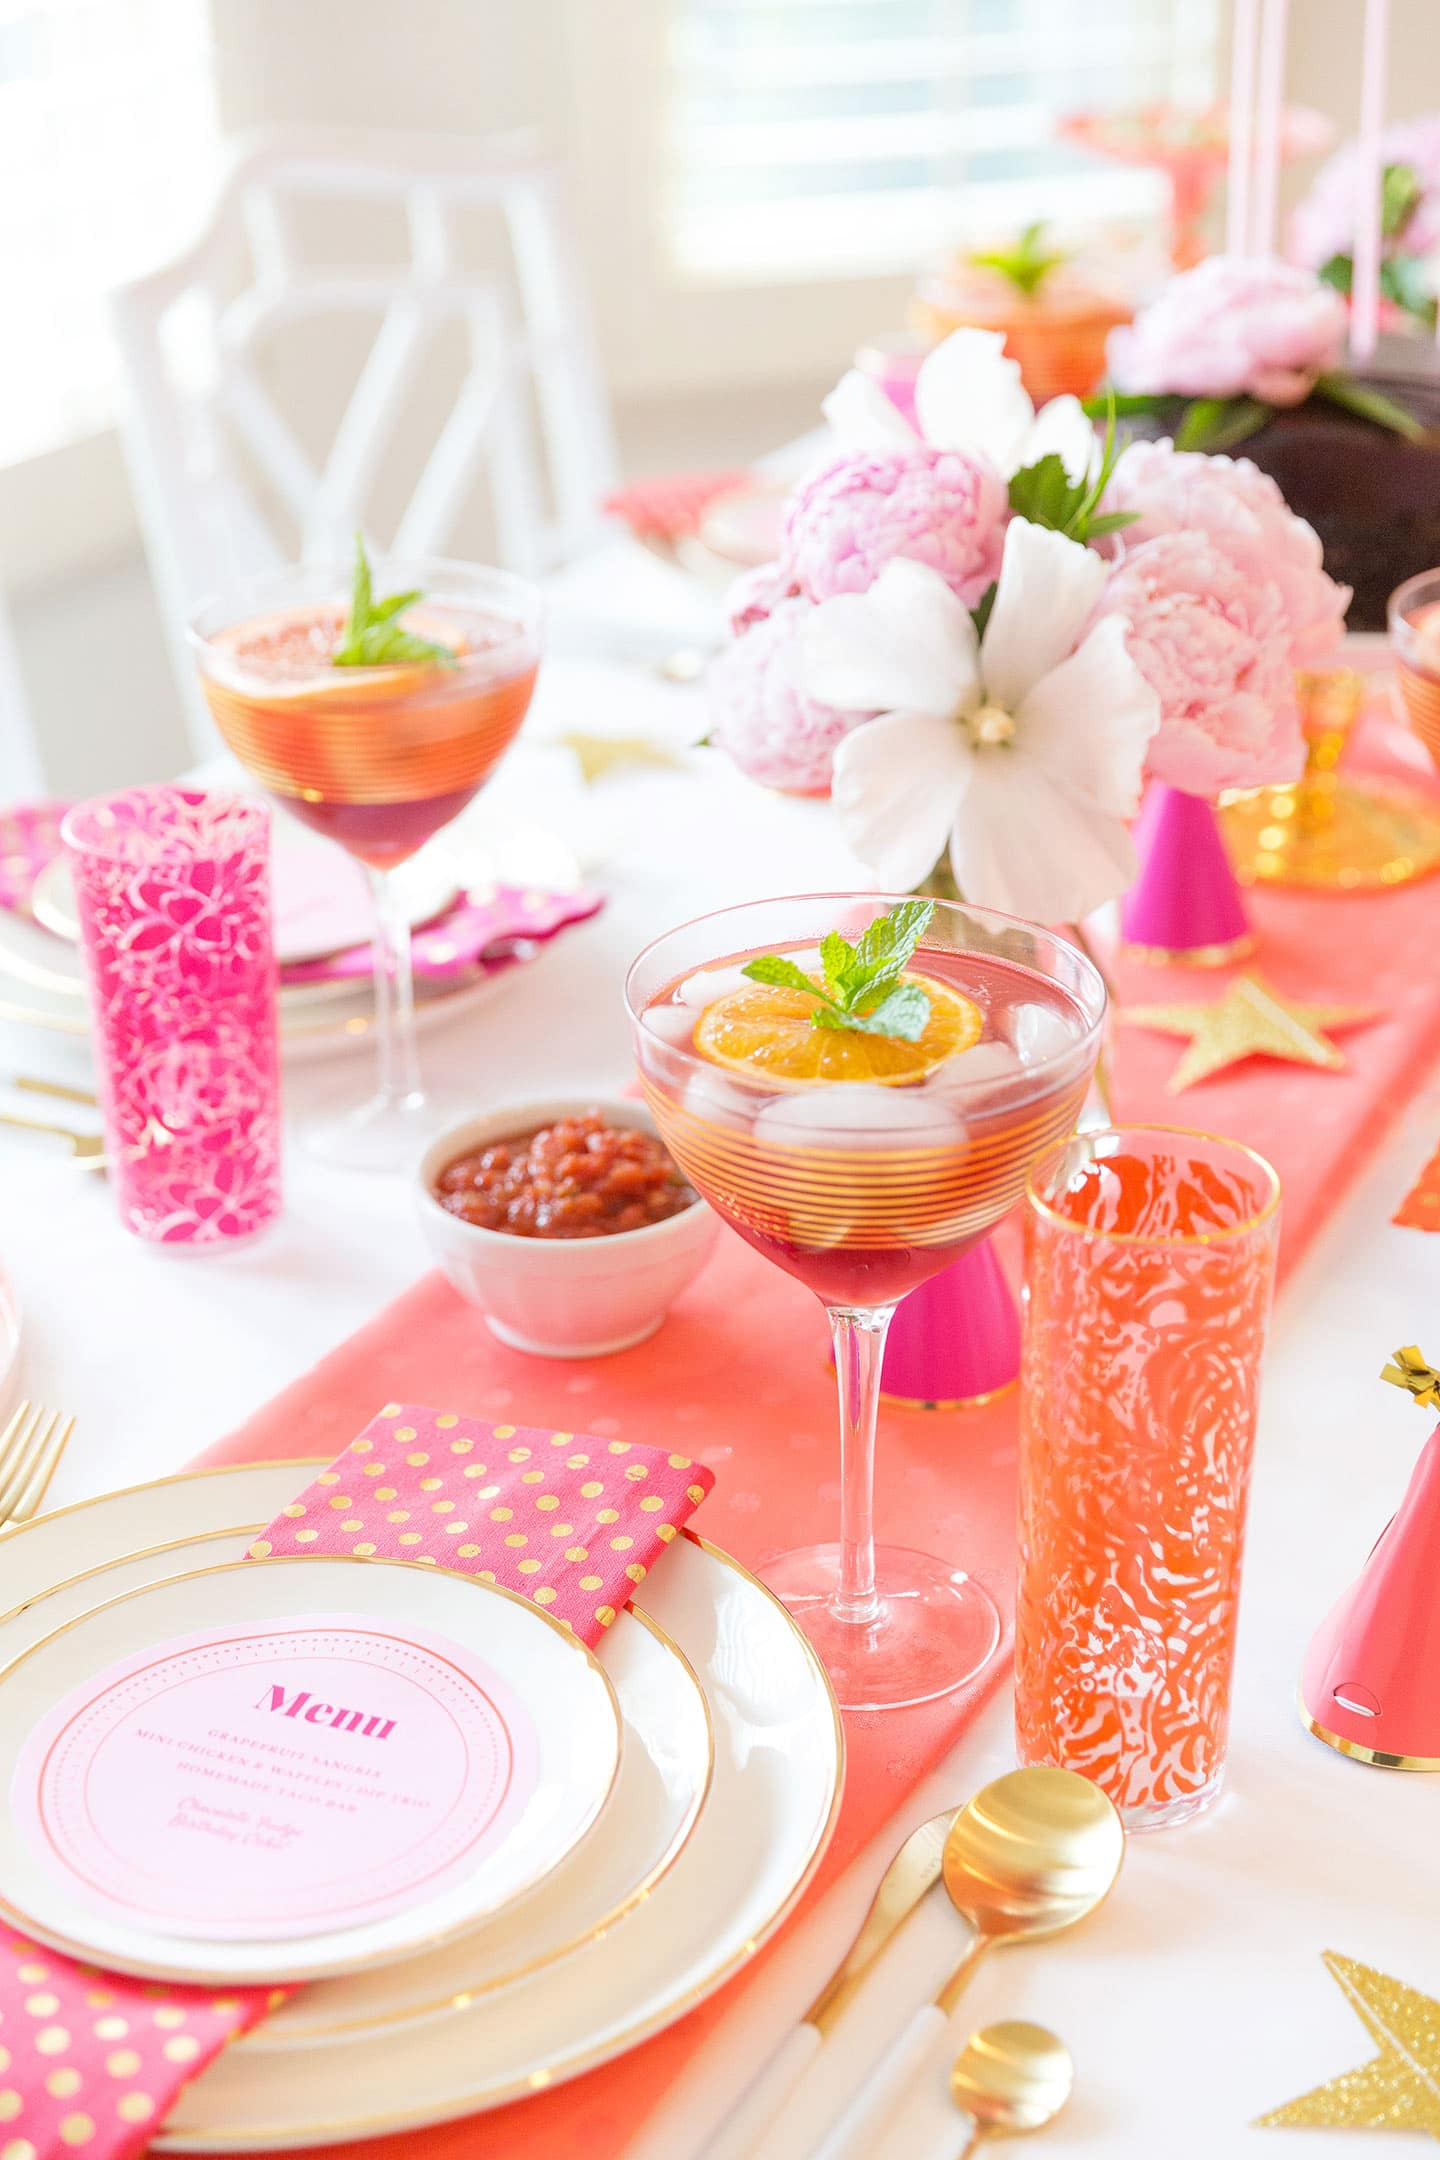 Birthday Decorations For Adults  Creative Adult Birthday Party Ideas for the Girls